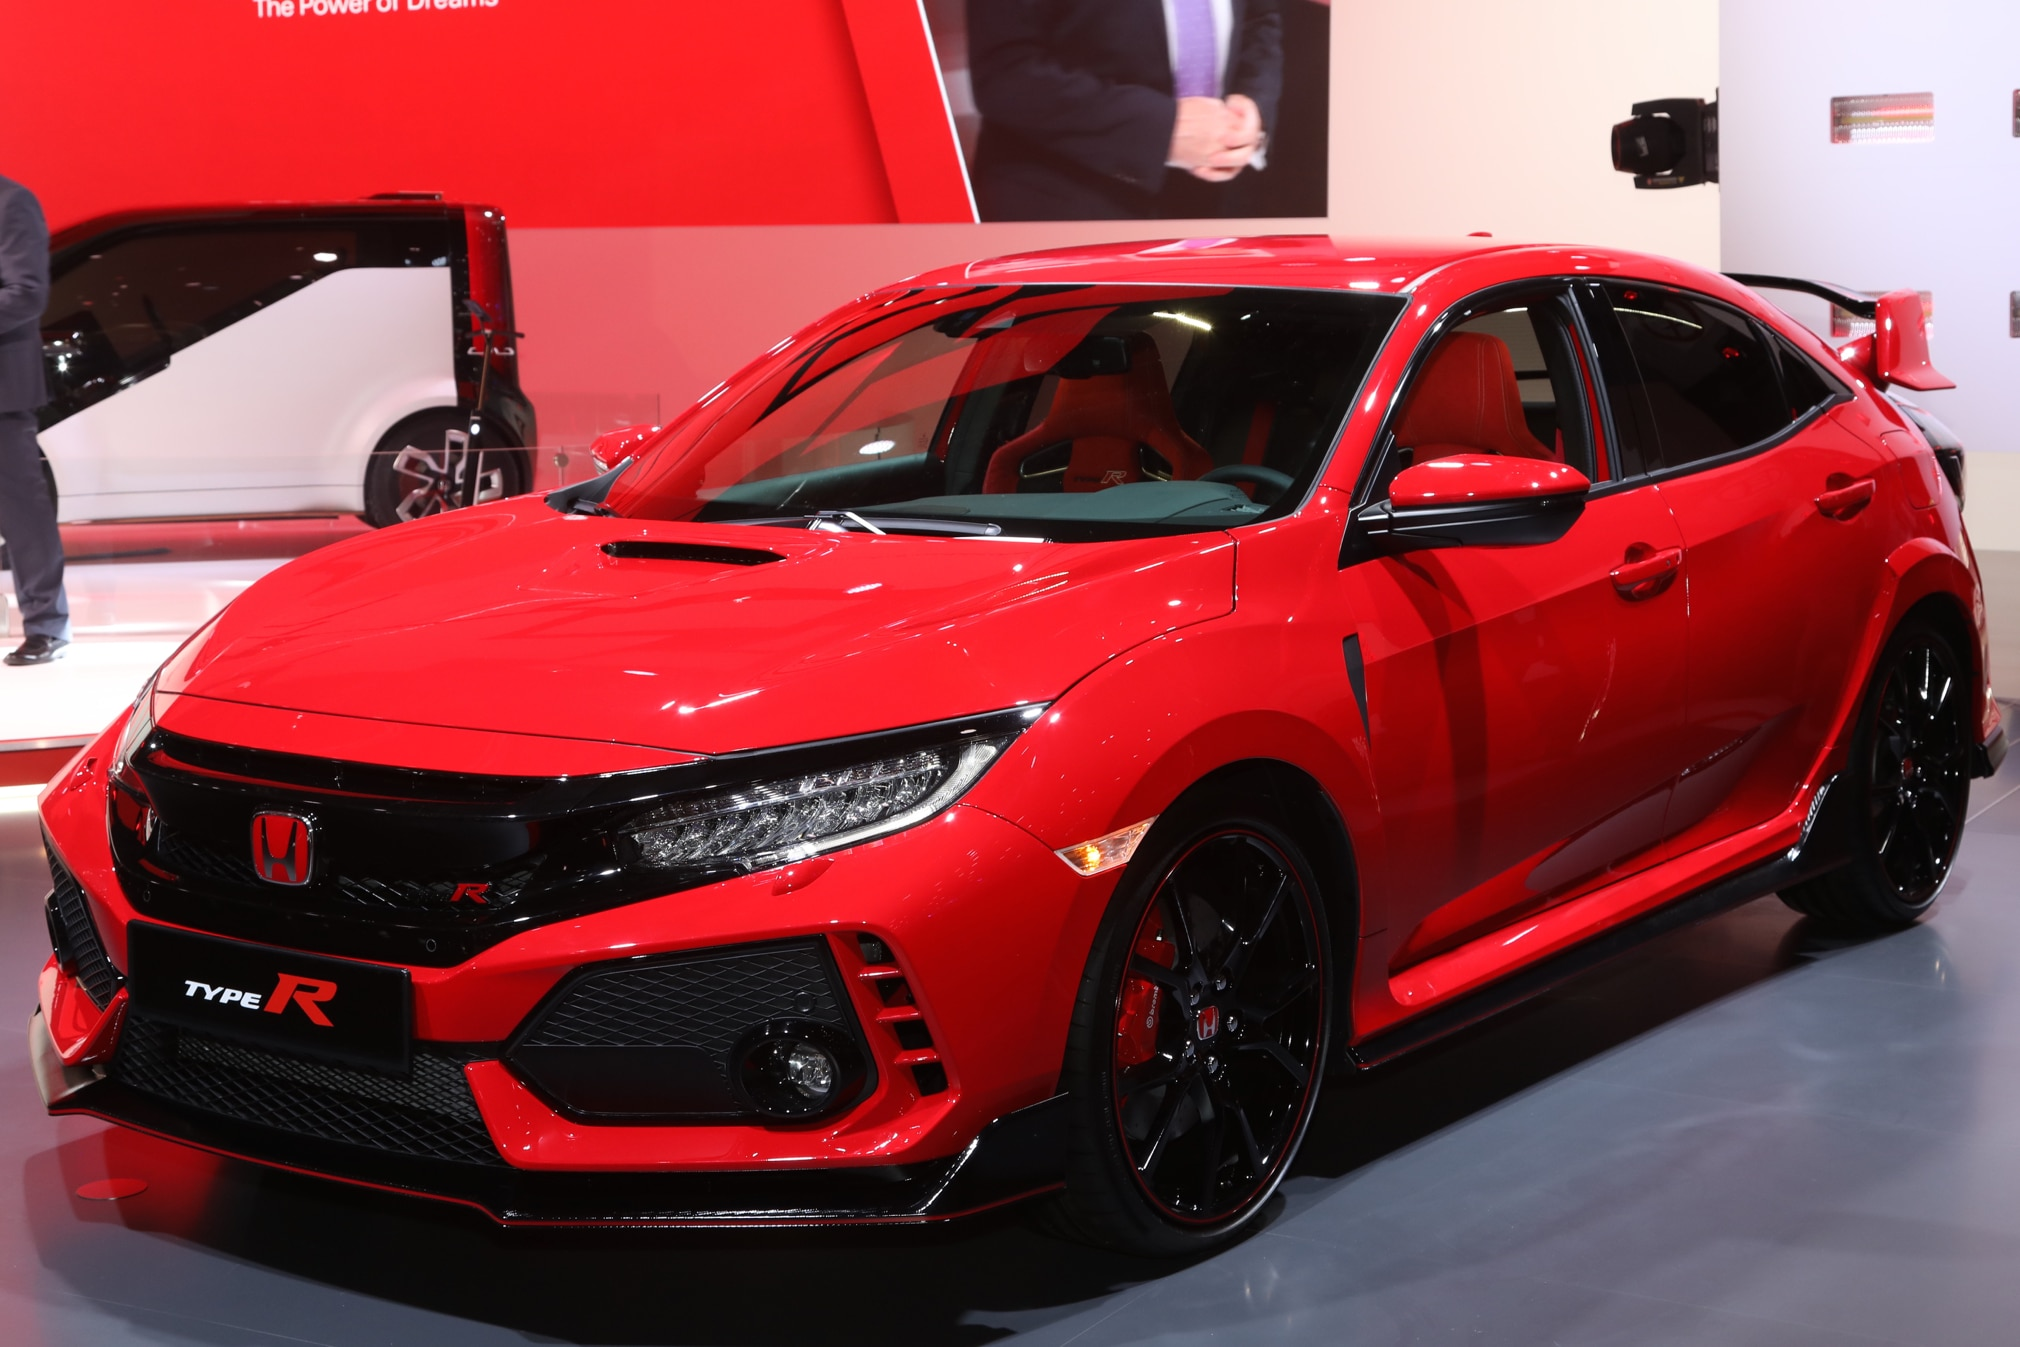 honda civic type r 2017 primer vistazo motor trend en espa ol. Black Bedroom Furniture Sets. Home Design Ideas